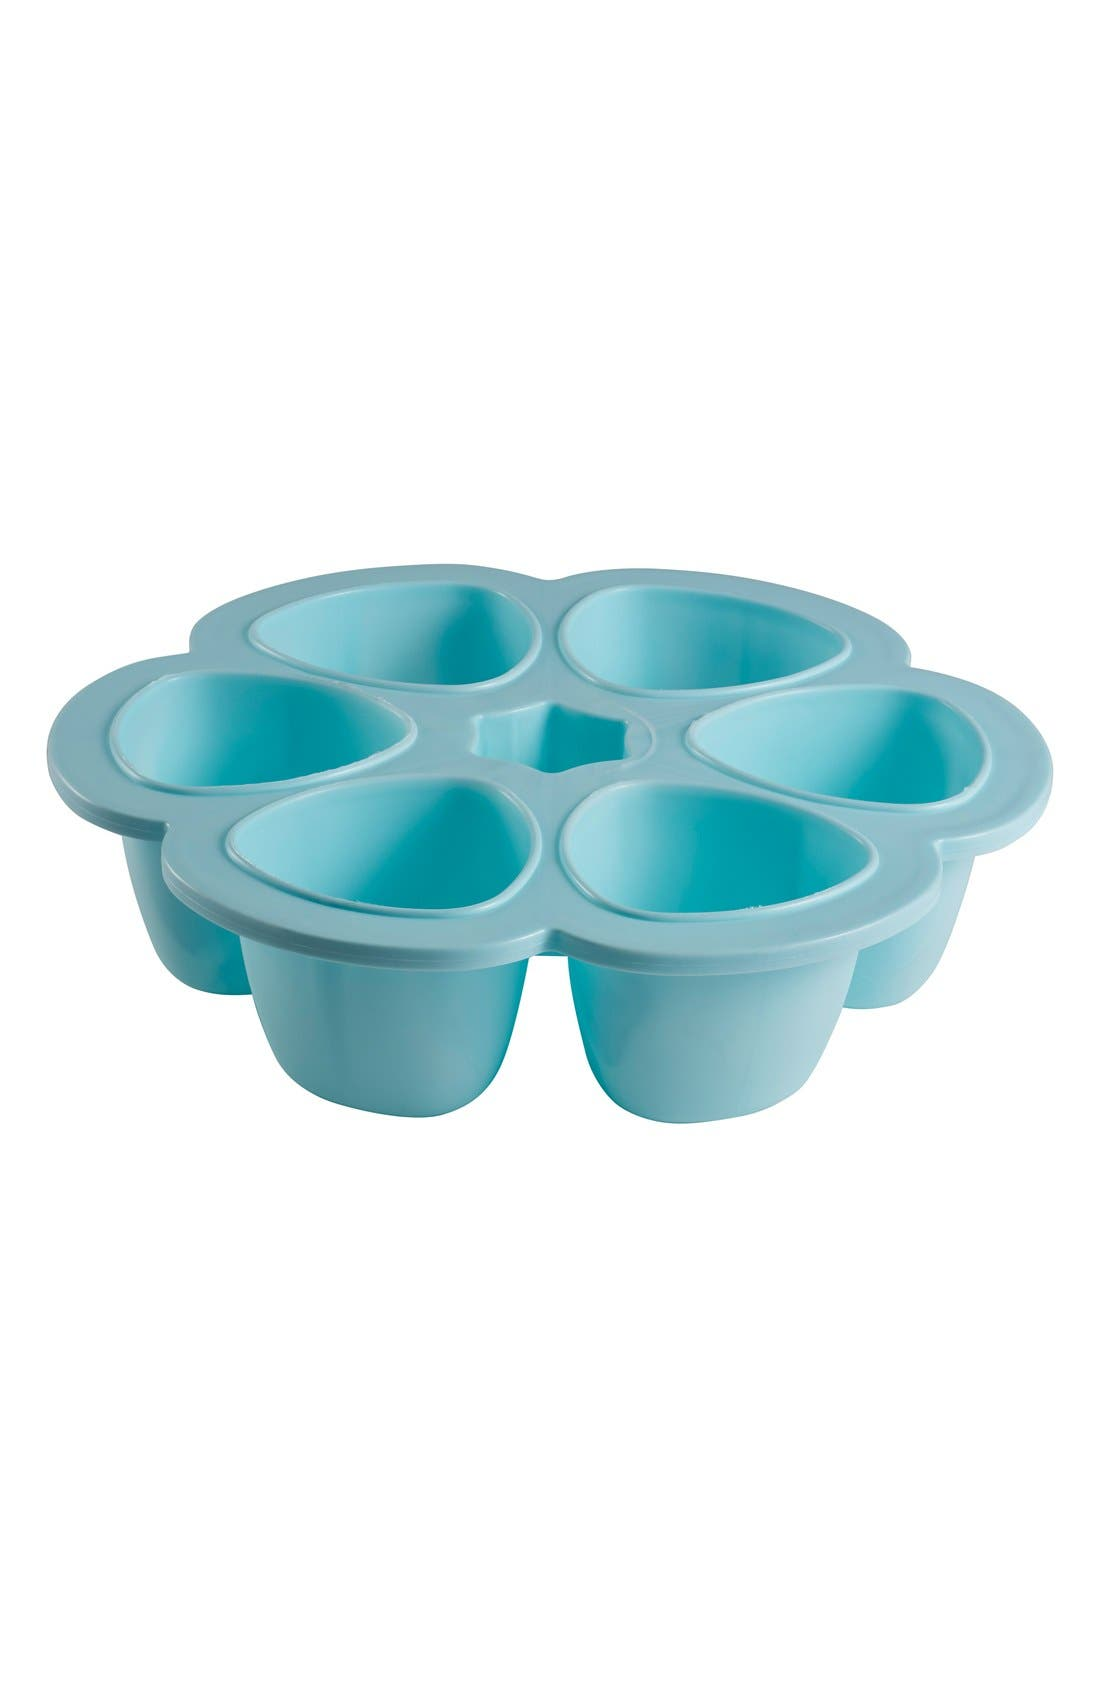 'Multiportions<sup>™</sup>' Silicone 3 oz. Food Cup Tray,                             Main thumbnail 1, color,                             Sky